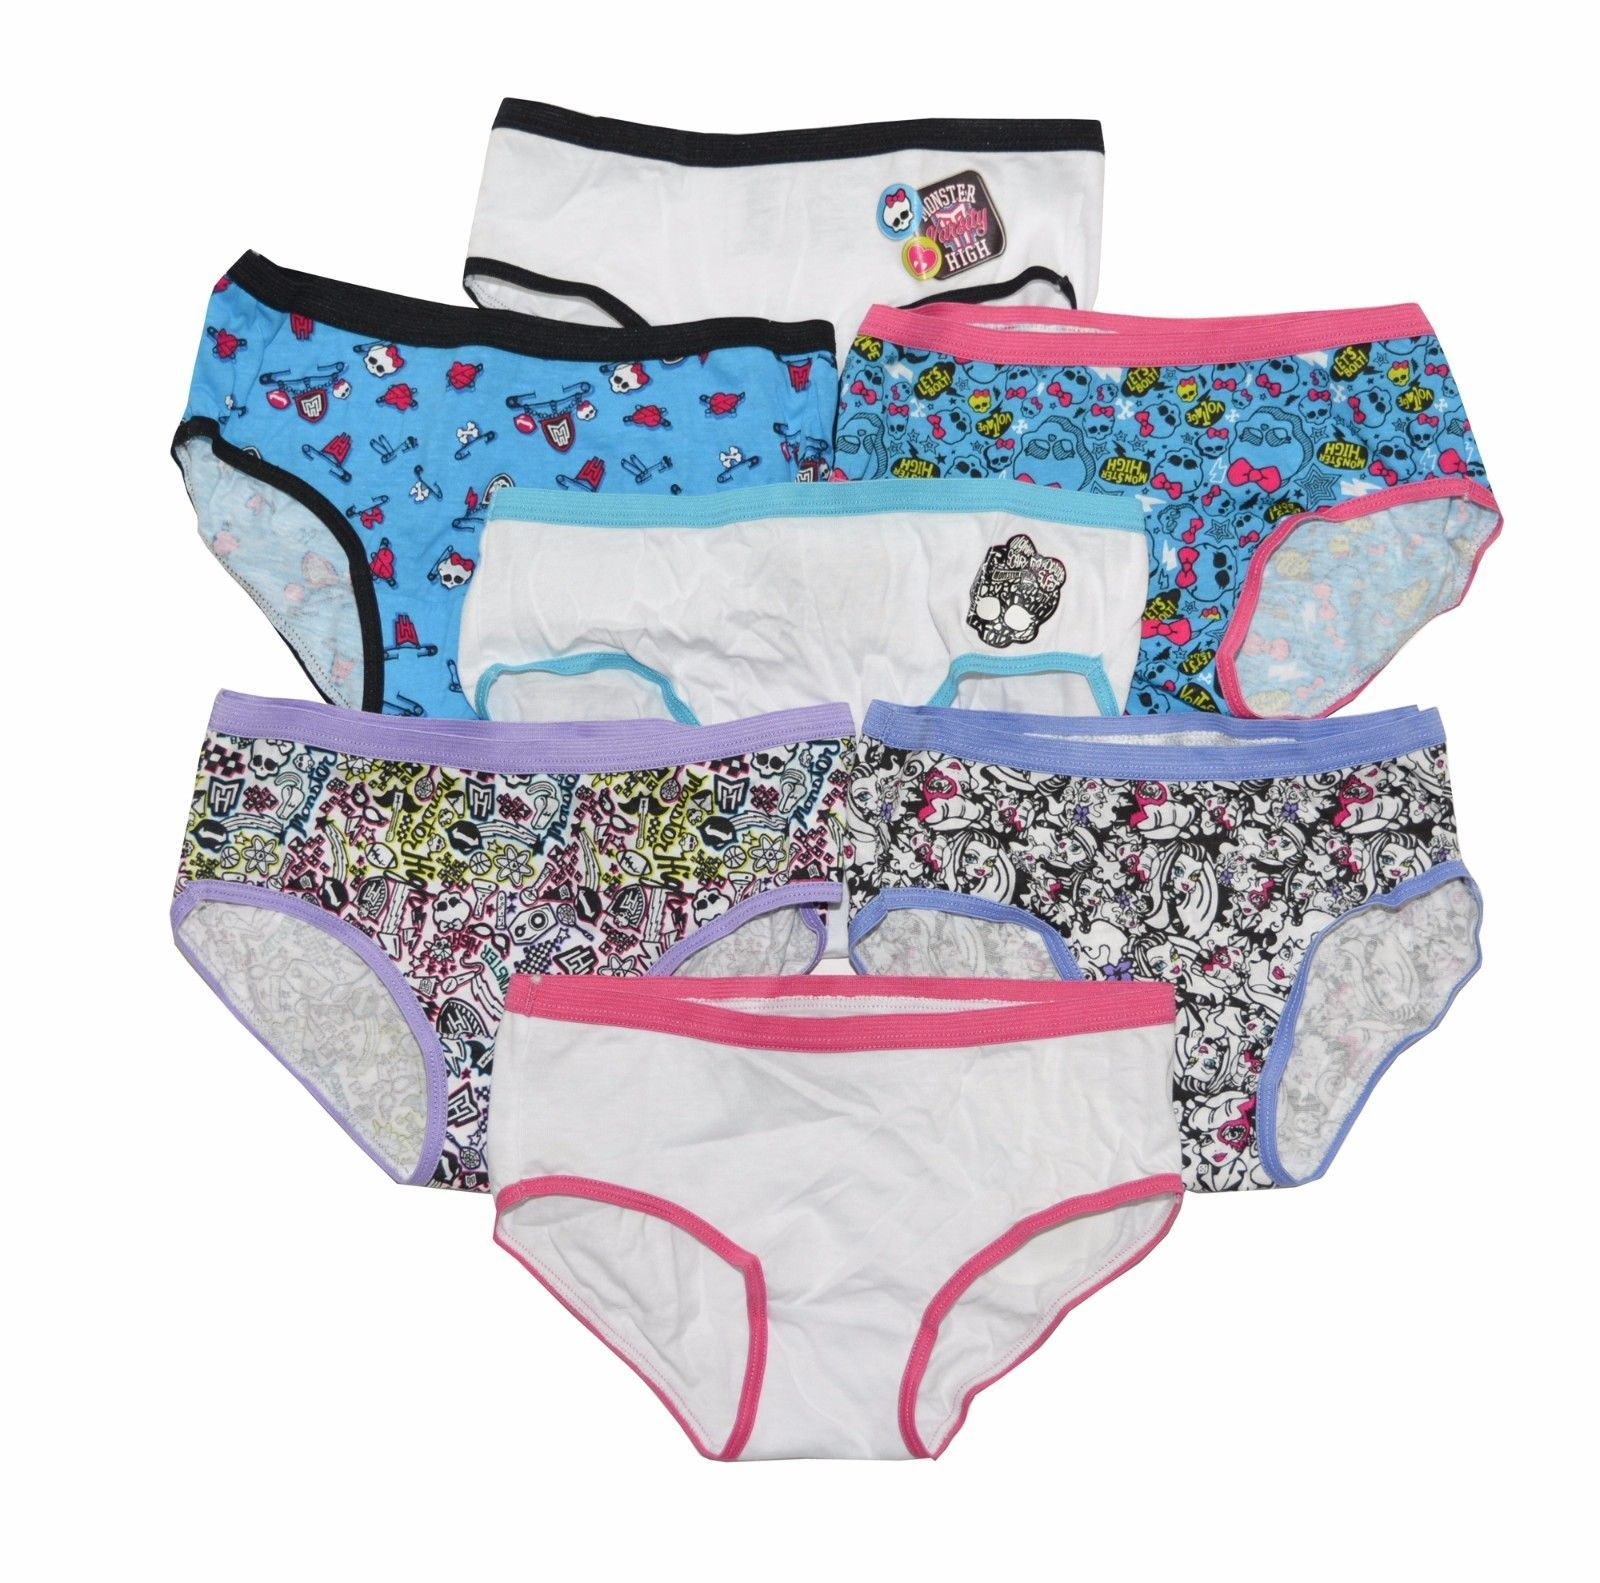 a7bc8efff9d Monster High Girls 7 Pack Hipster Panties - and 22 similar items. S l1600